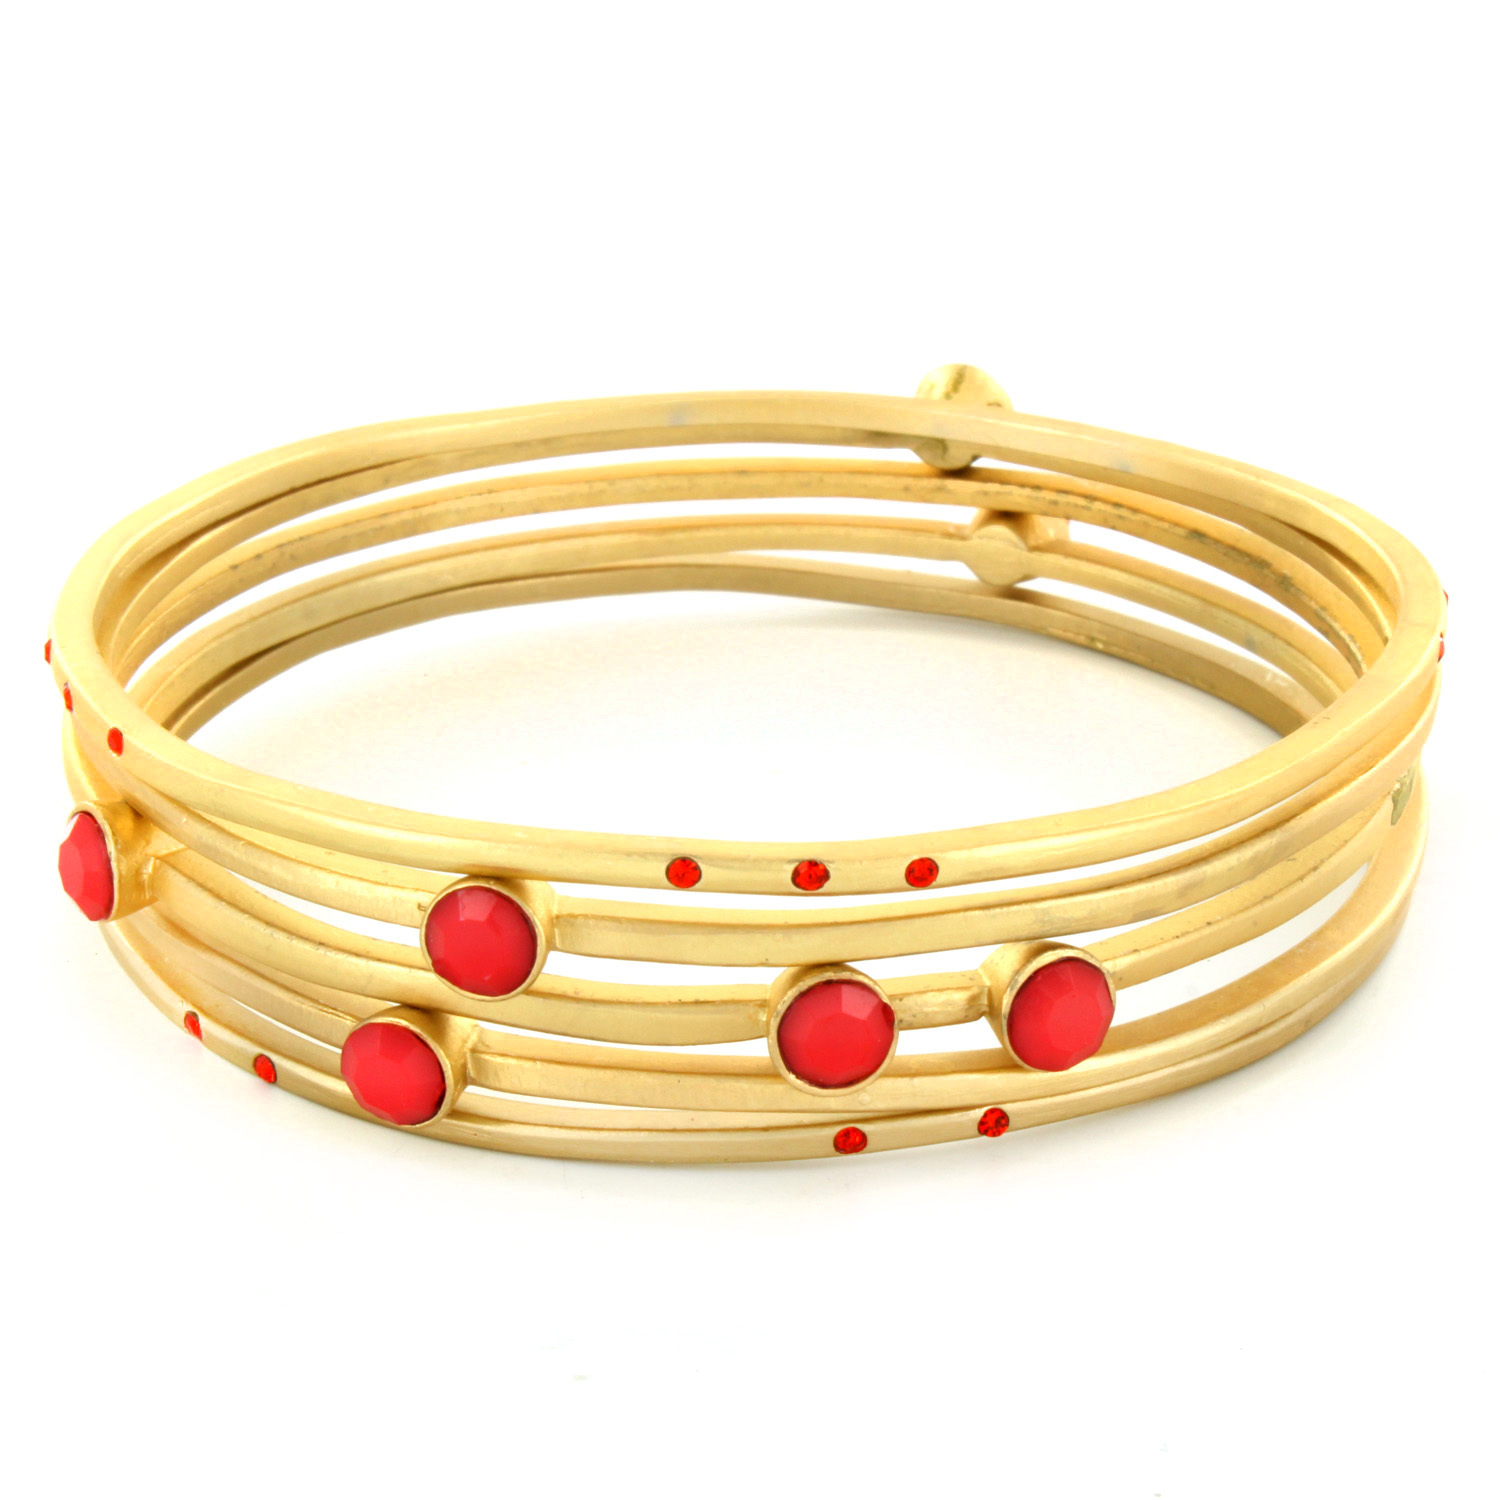 "Goldtone Colored Coral Crystals 5-Piece Bangle Bracelets (16mm) 8.5"" by"